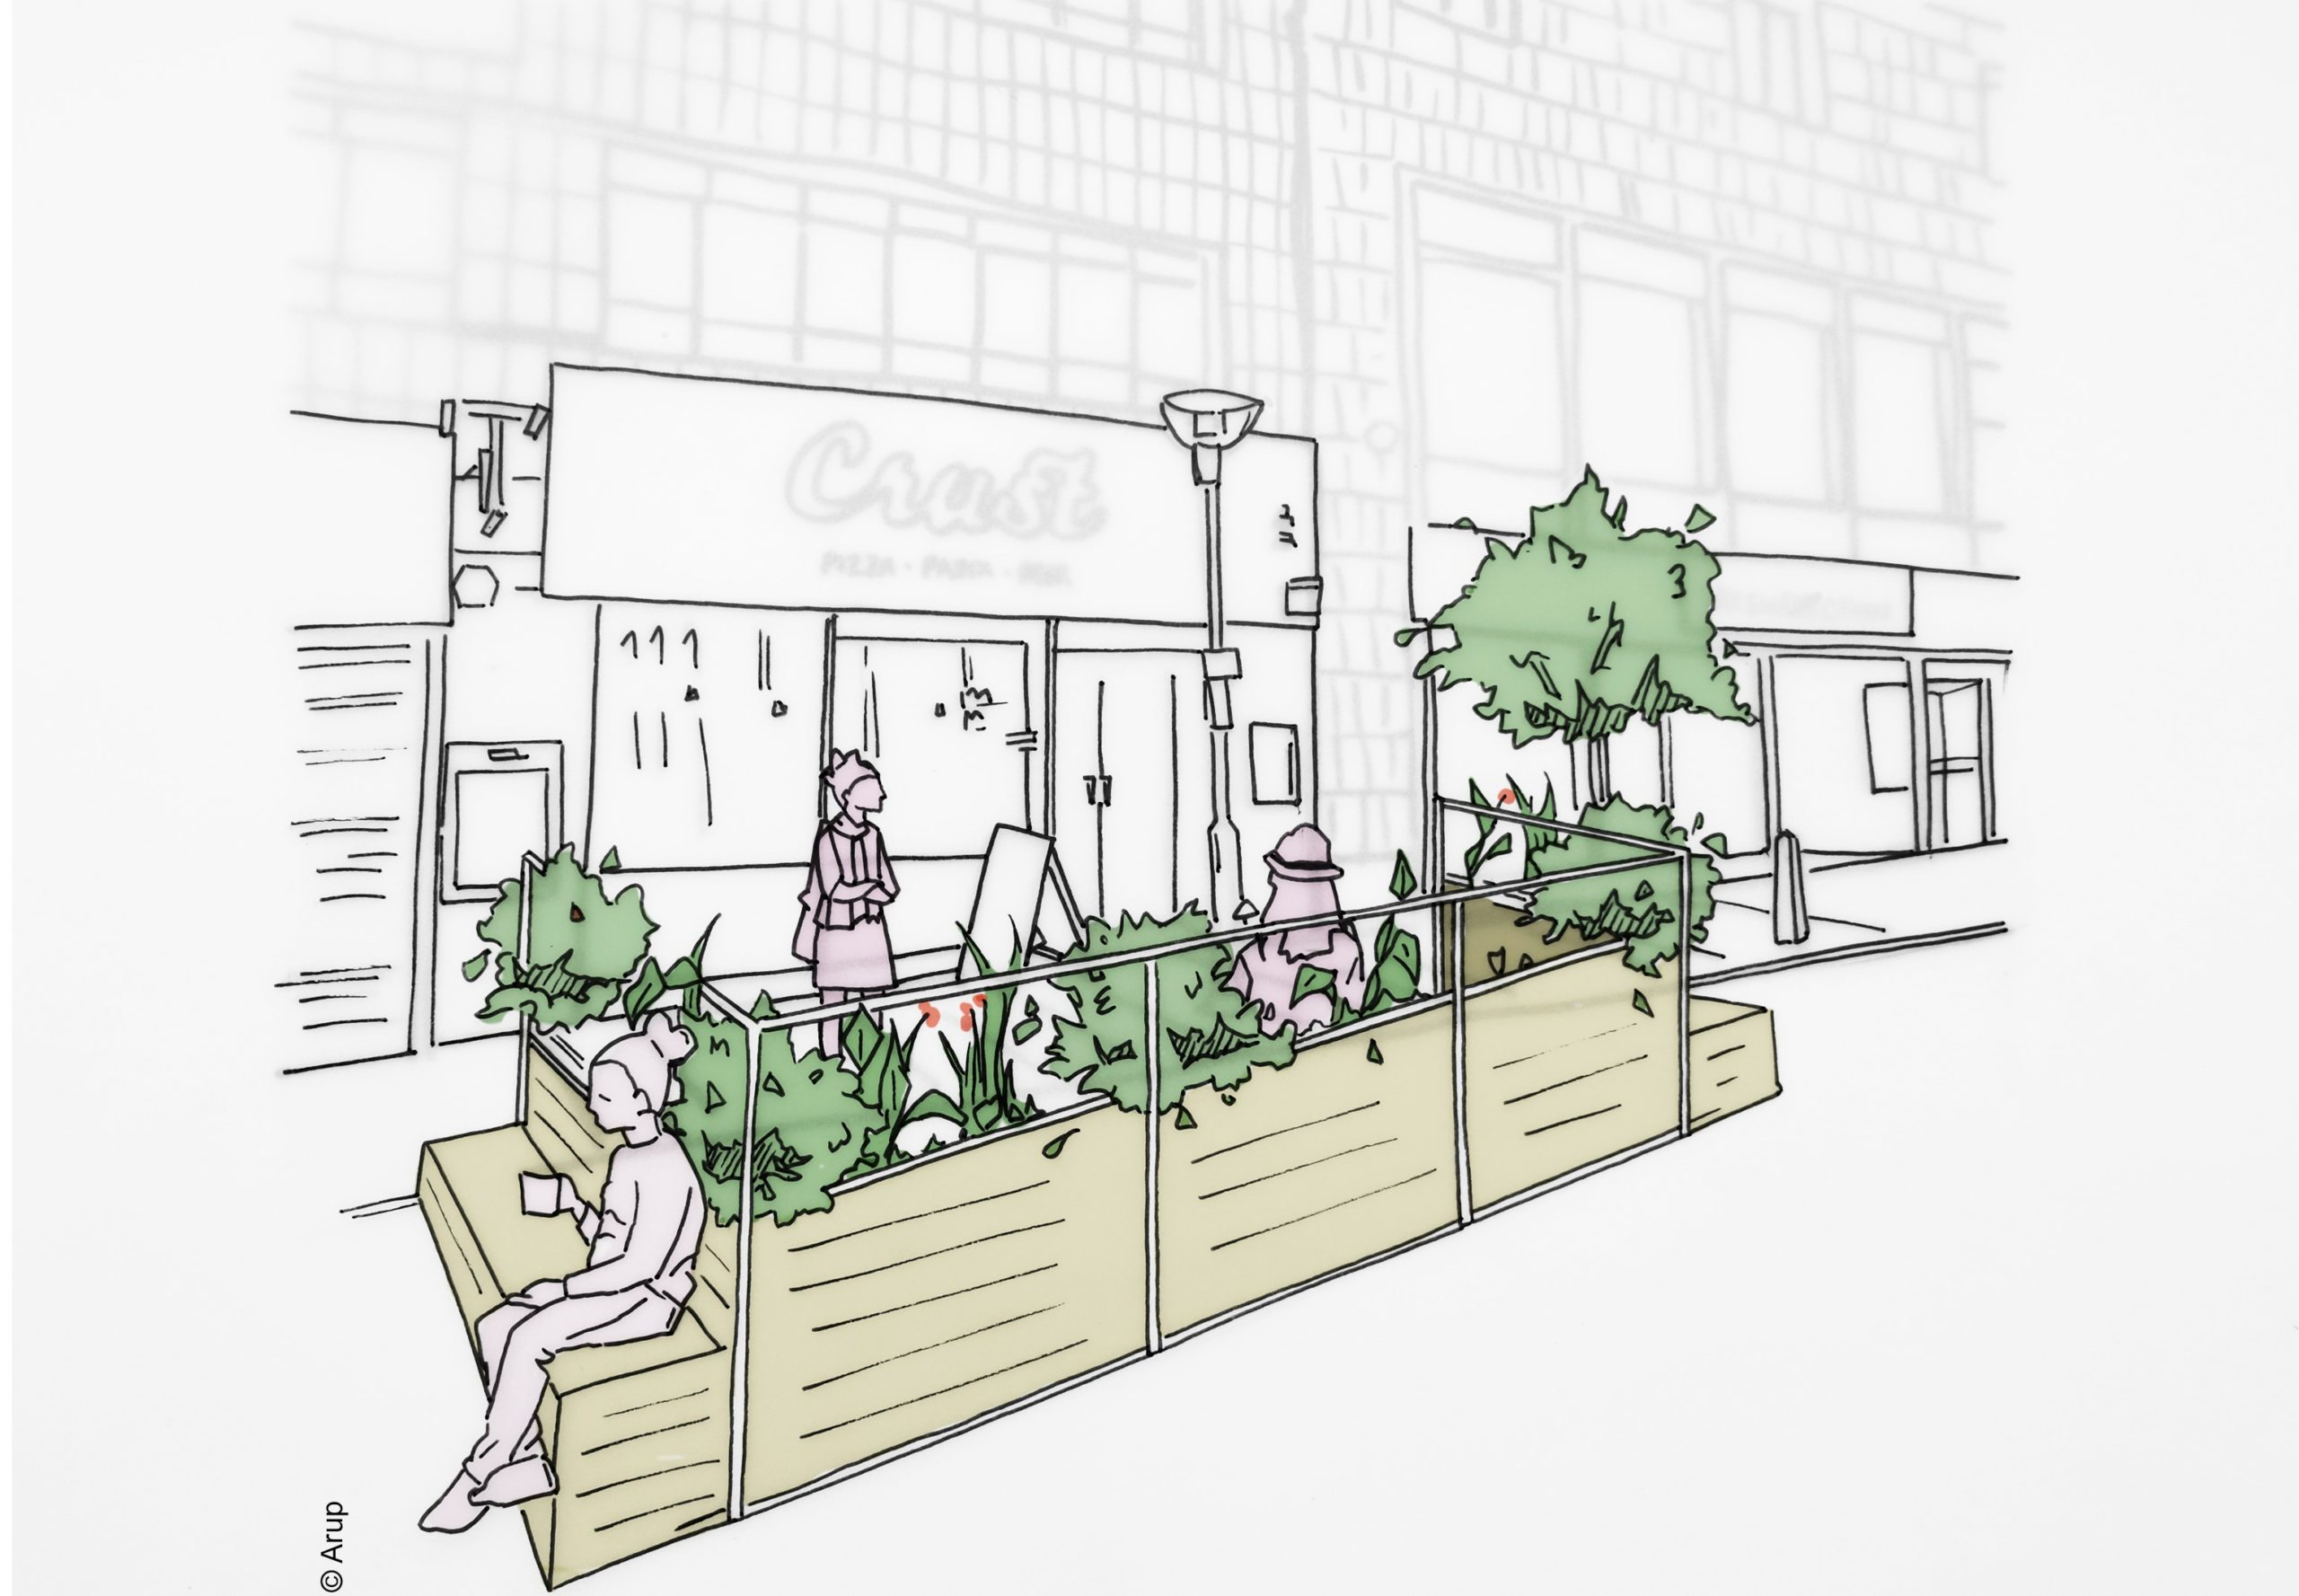 Liverpool Without Walls pilot scheme to help restaurants reimagine outdoor eating